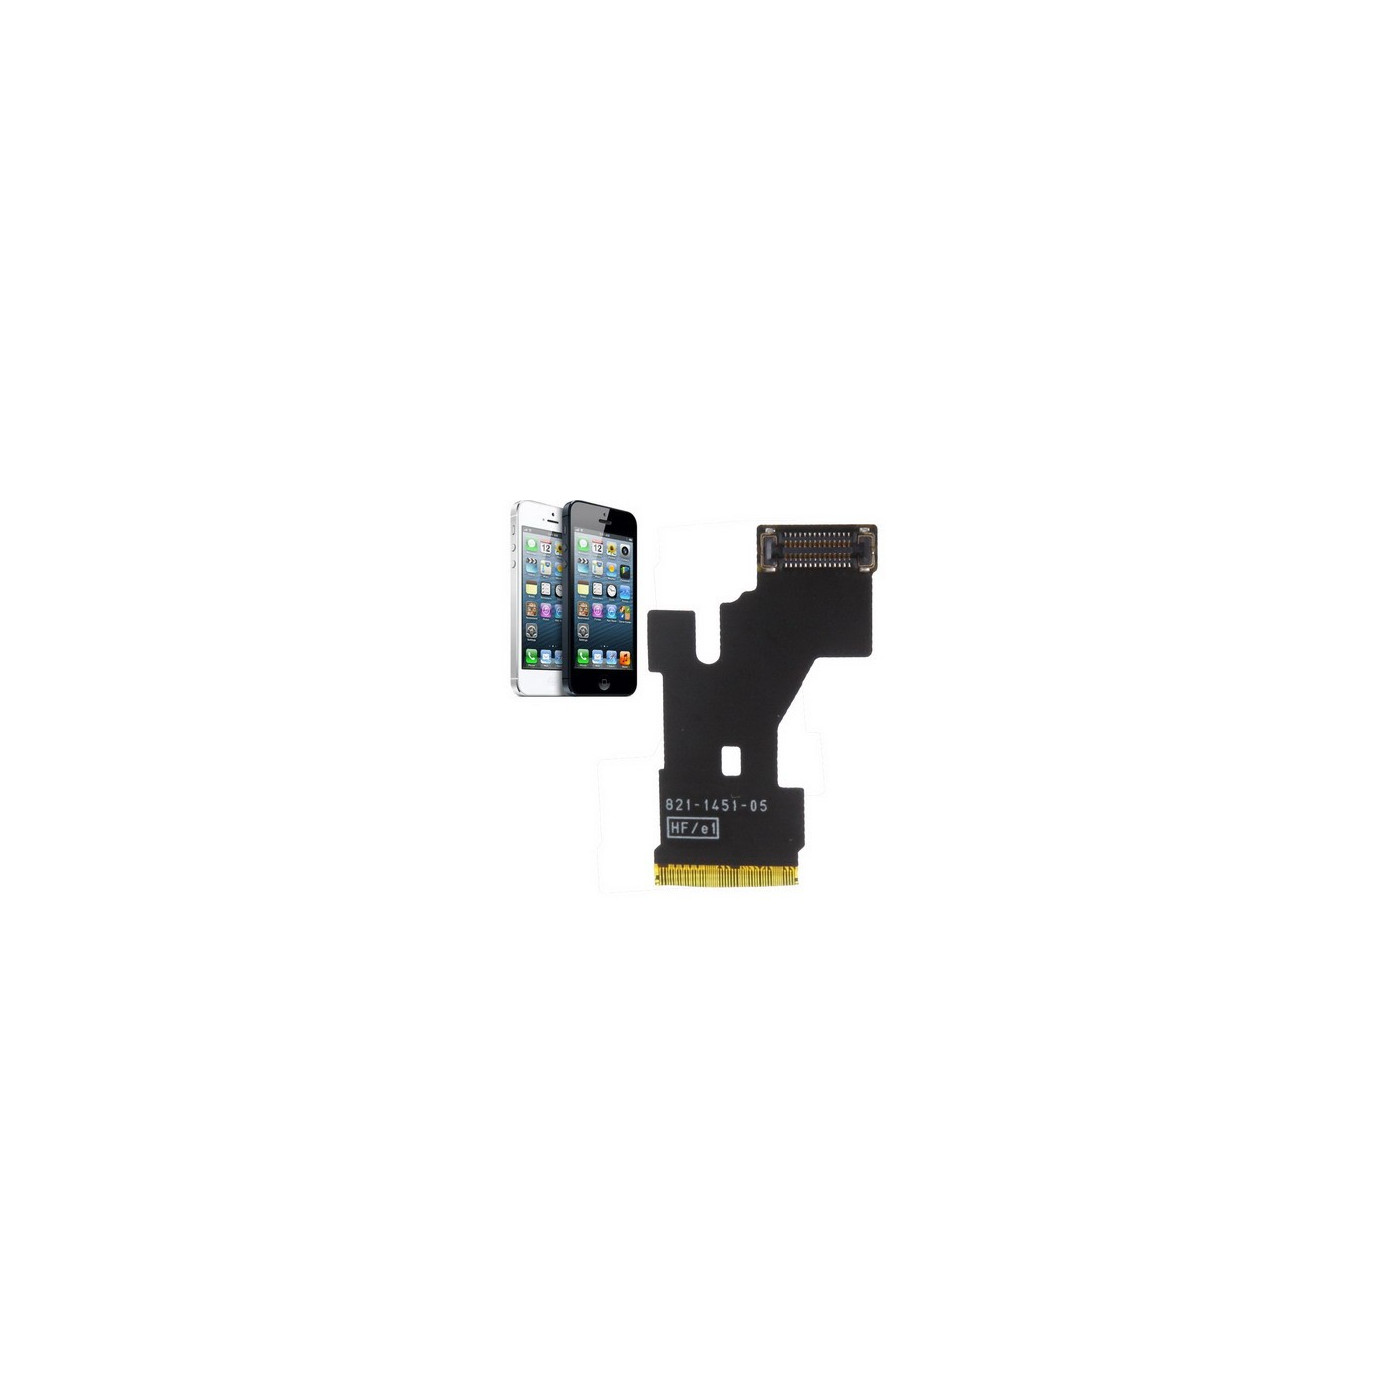 LCD FLEX CABLE FOR IPHONE 5 SCREEN TOUCH SCREEN SPARE